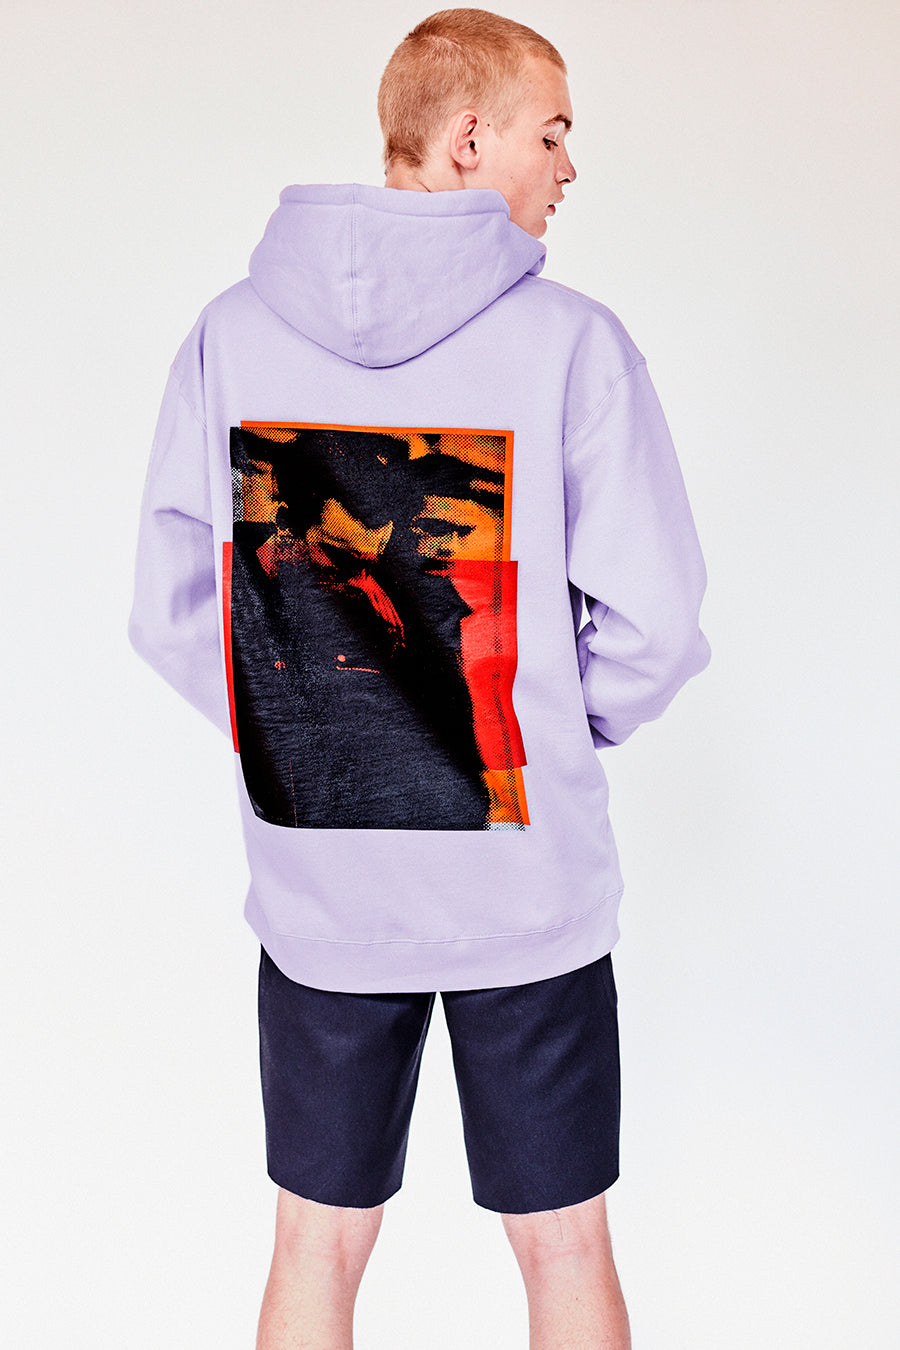 Brand New from New York City: Stmarksnewyork.com. Shop the St. Marks Couture Guys Lilac Hoodie: Featuring St. Marks Couture New York logo on chest and St. Marks guys image on the back. Hand silkscreen printed in New York with love.